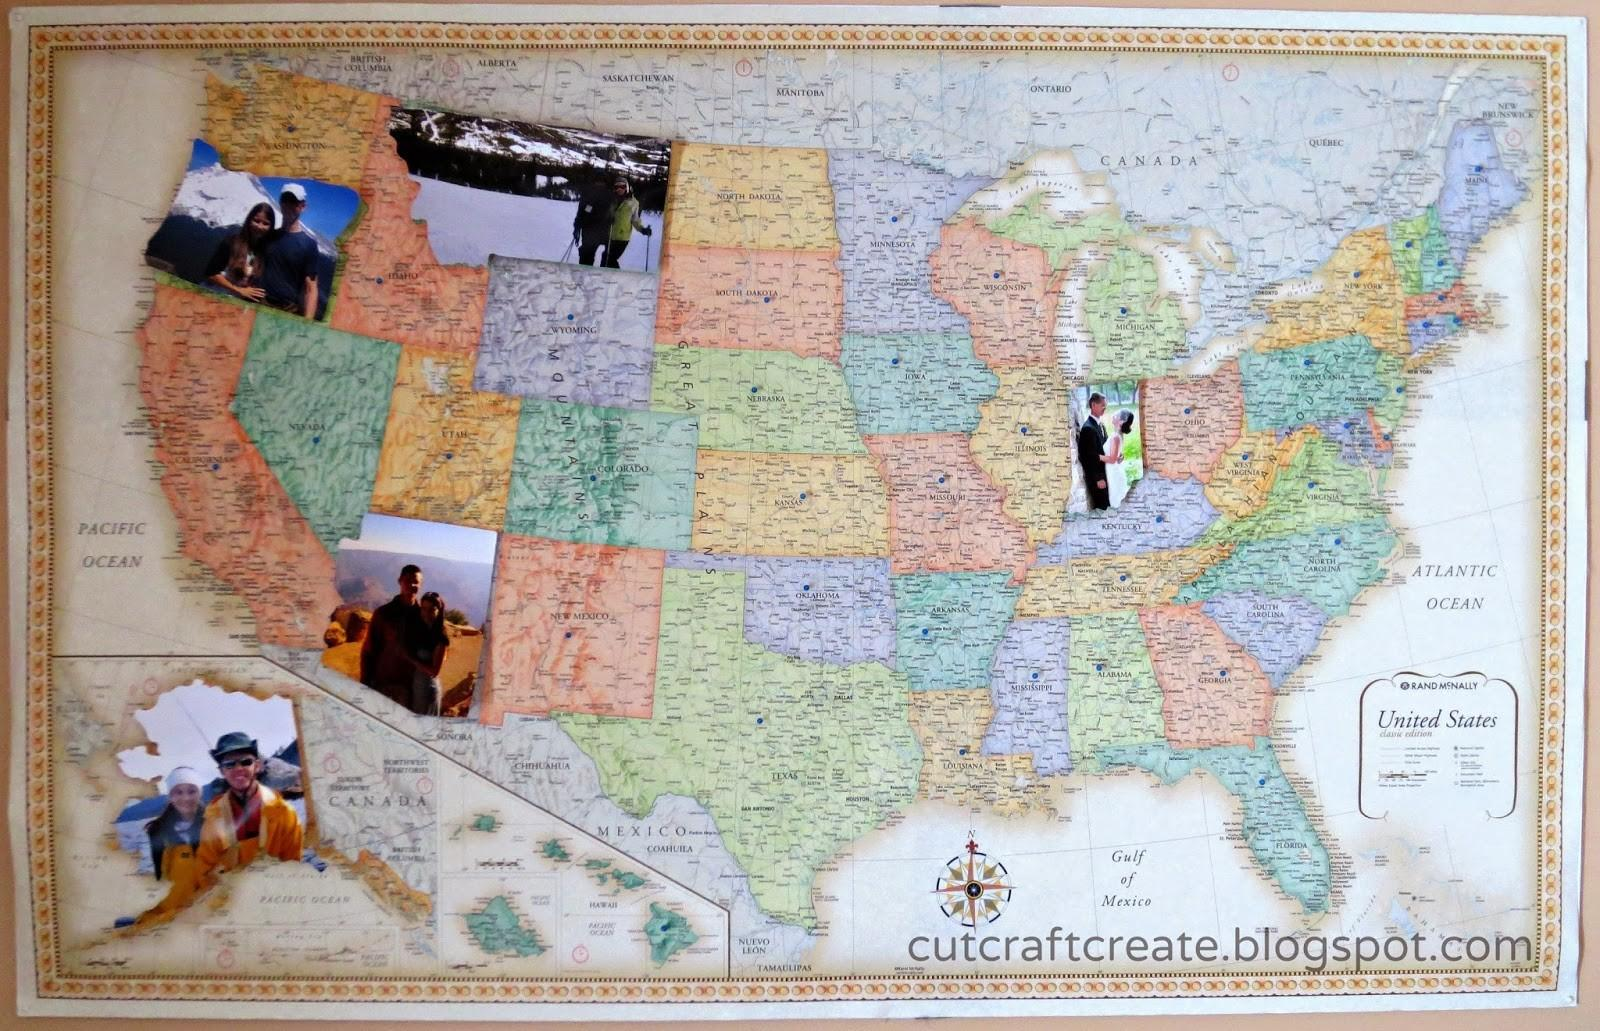 Cut Craft Create Personalized Map Our Paper